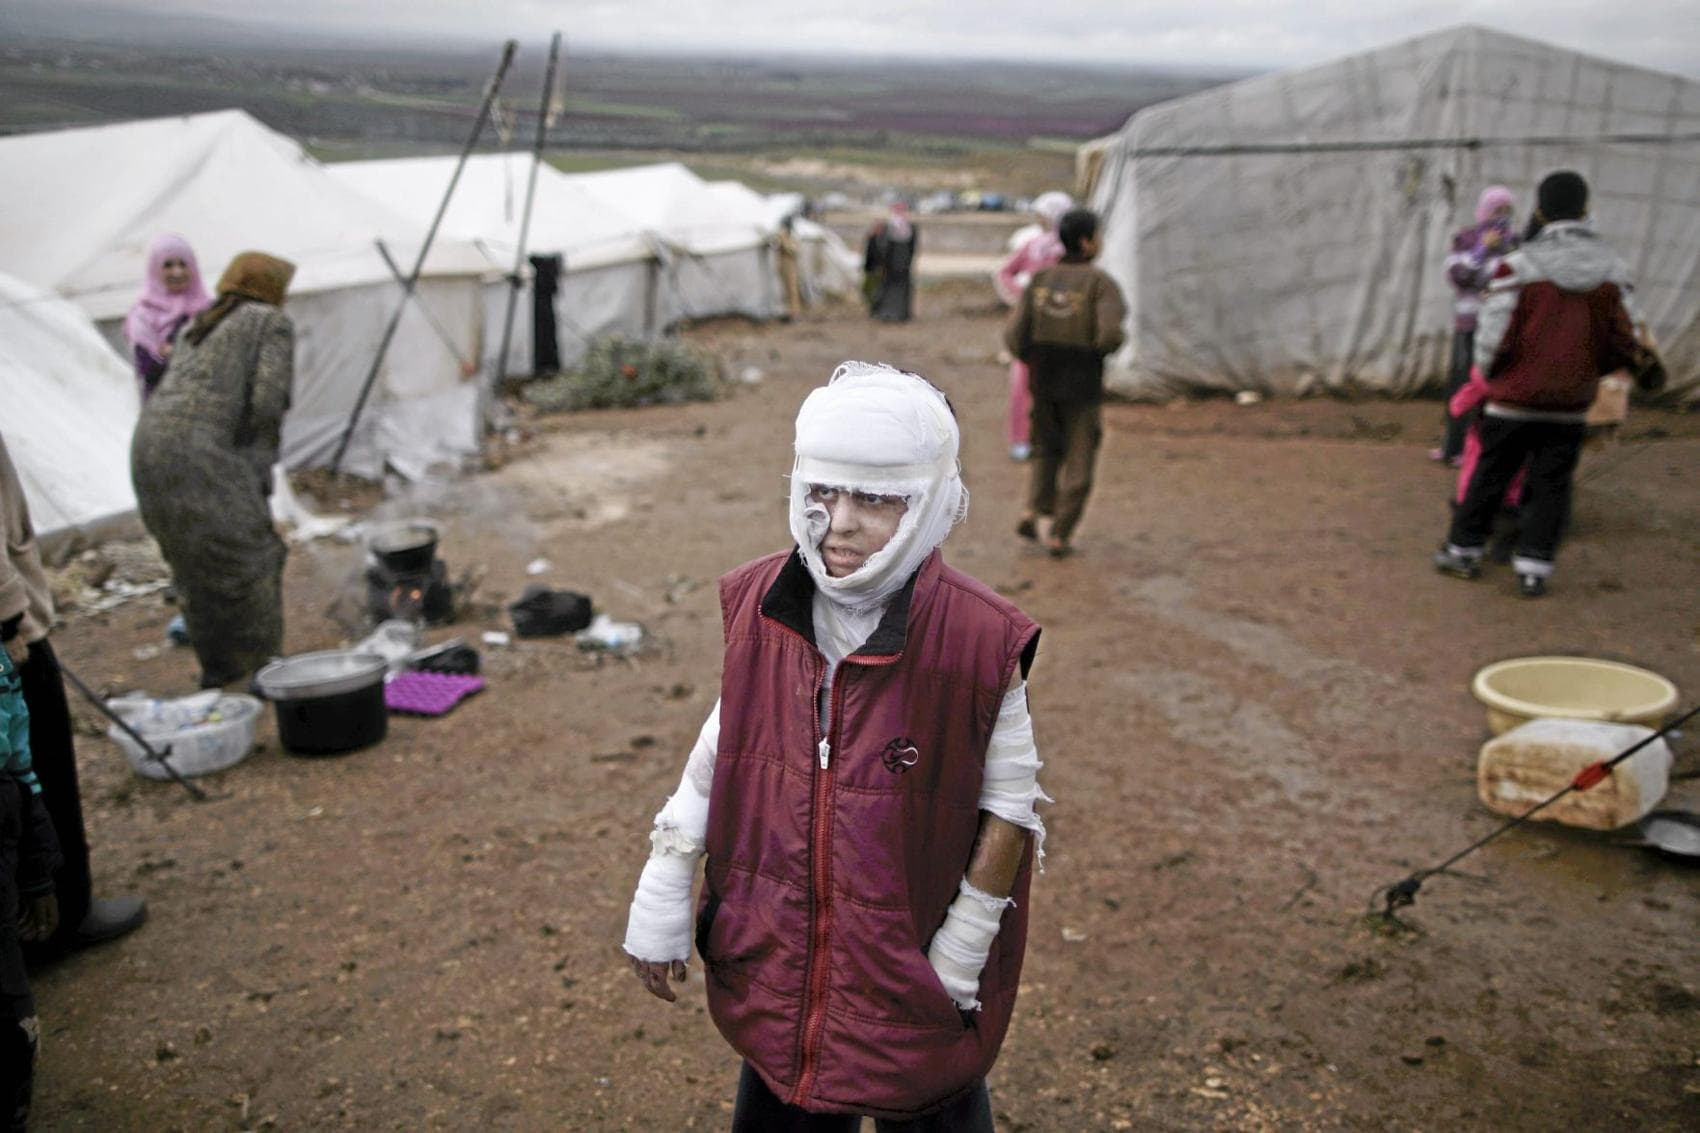 Abdullah Ahmed, 10, who suffered burns in a Syrian government airstrike and fled his home with his family, stands outside their tent at a camp for displaced Syrians in the village of Atmeh, Syria, Dec. 11, 2012. (Muhammed Muheisen, Associated Press - December 11, 2012)